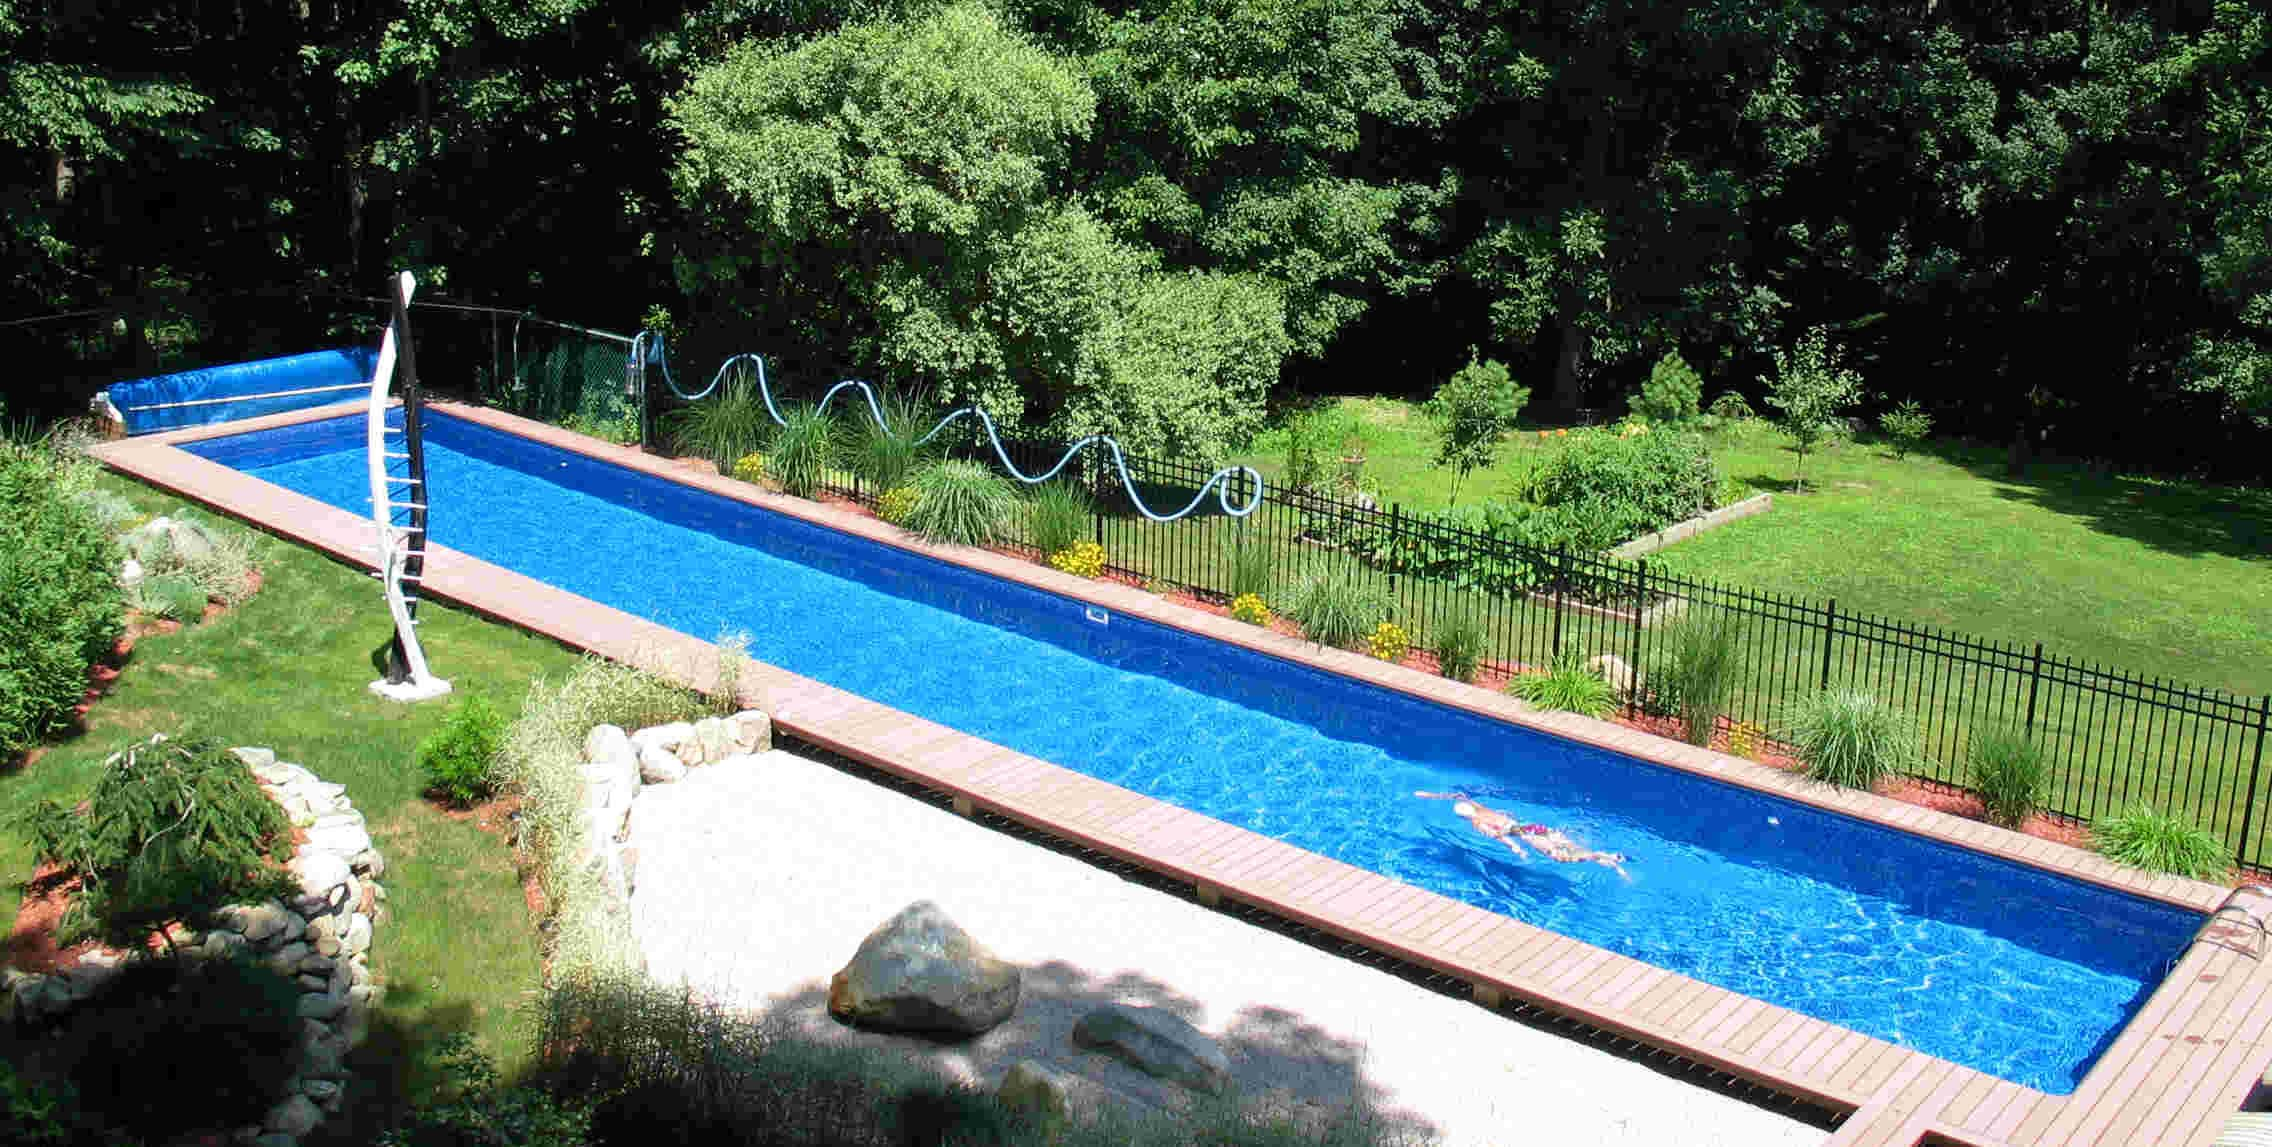 Diy inground swimming pool backyard design ideas for Inground indoor pool designs